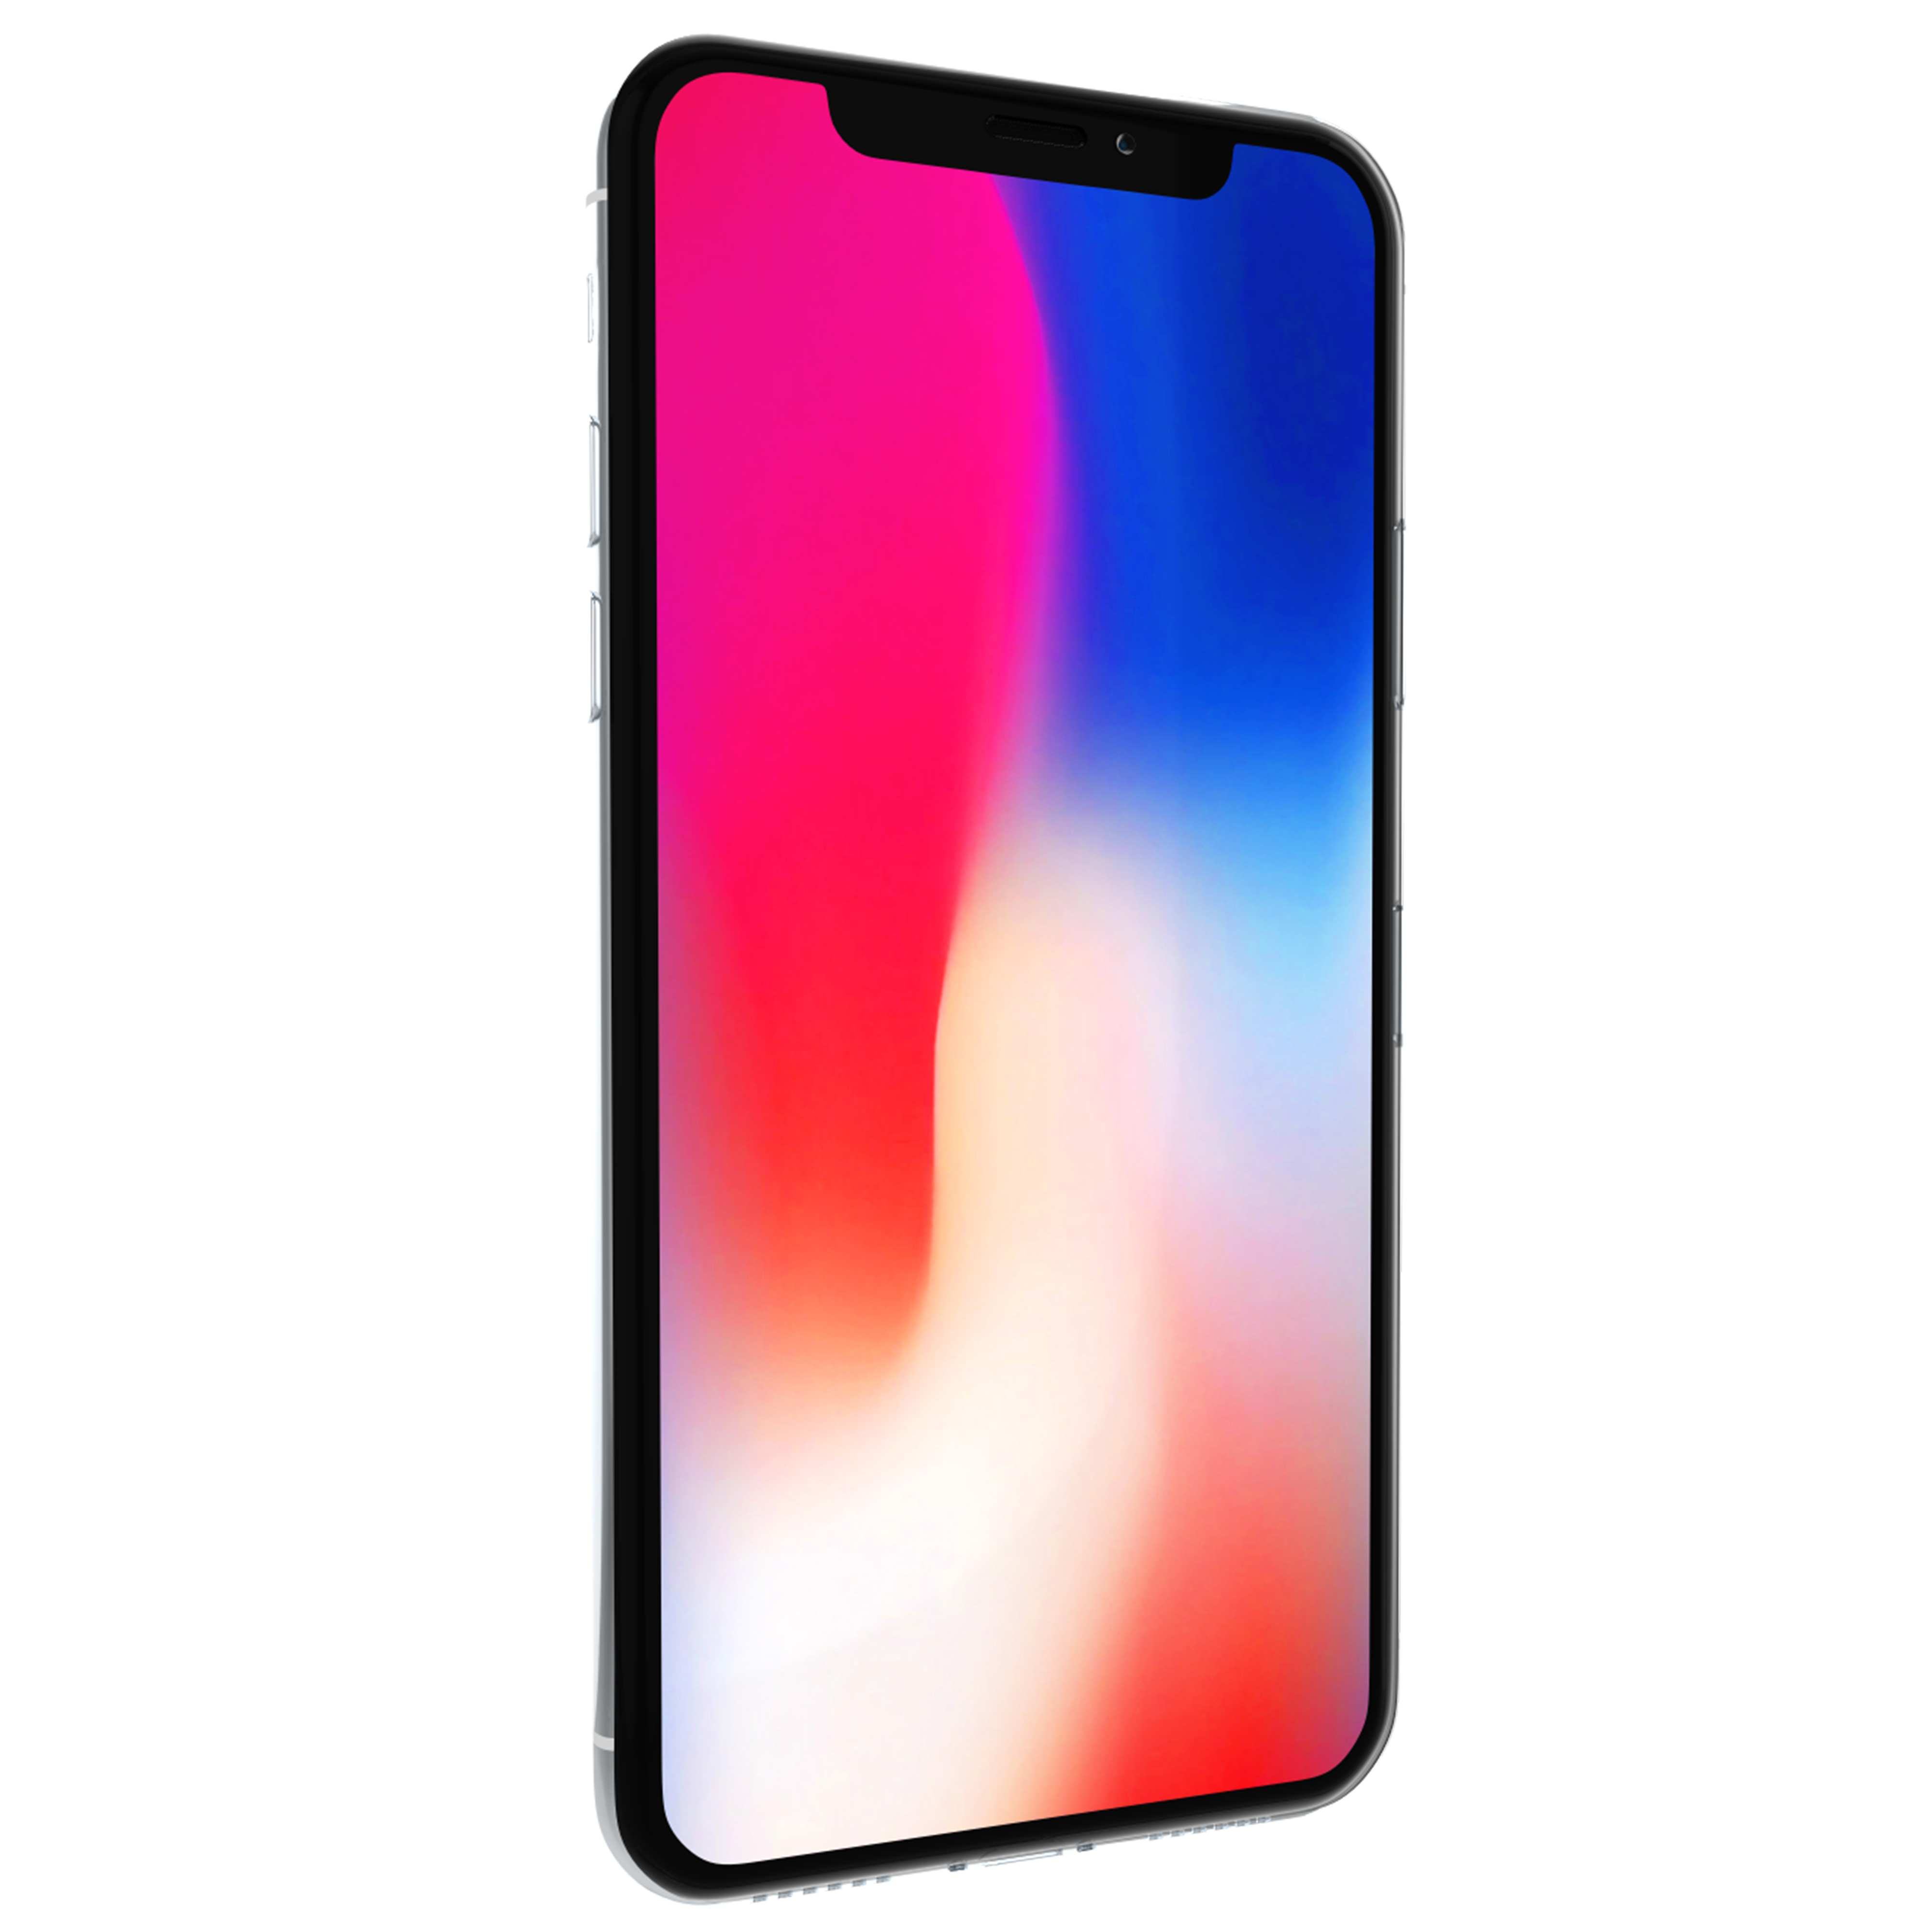 Download Apple iPhone X PNG Image for Free.